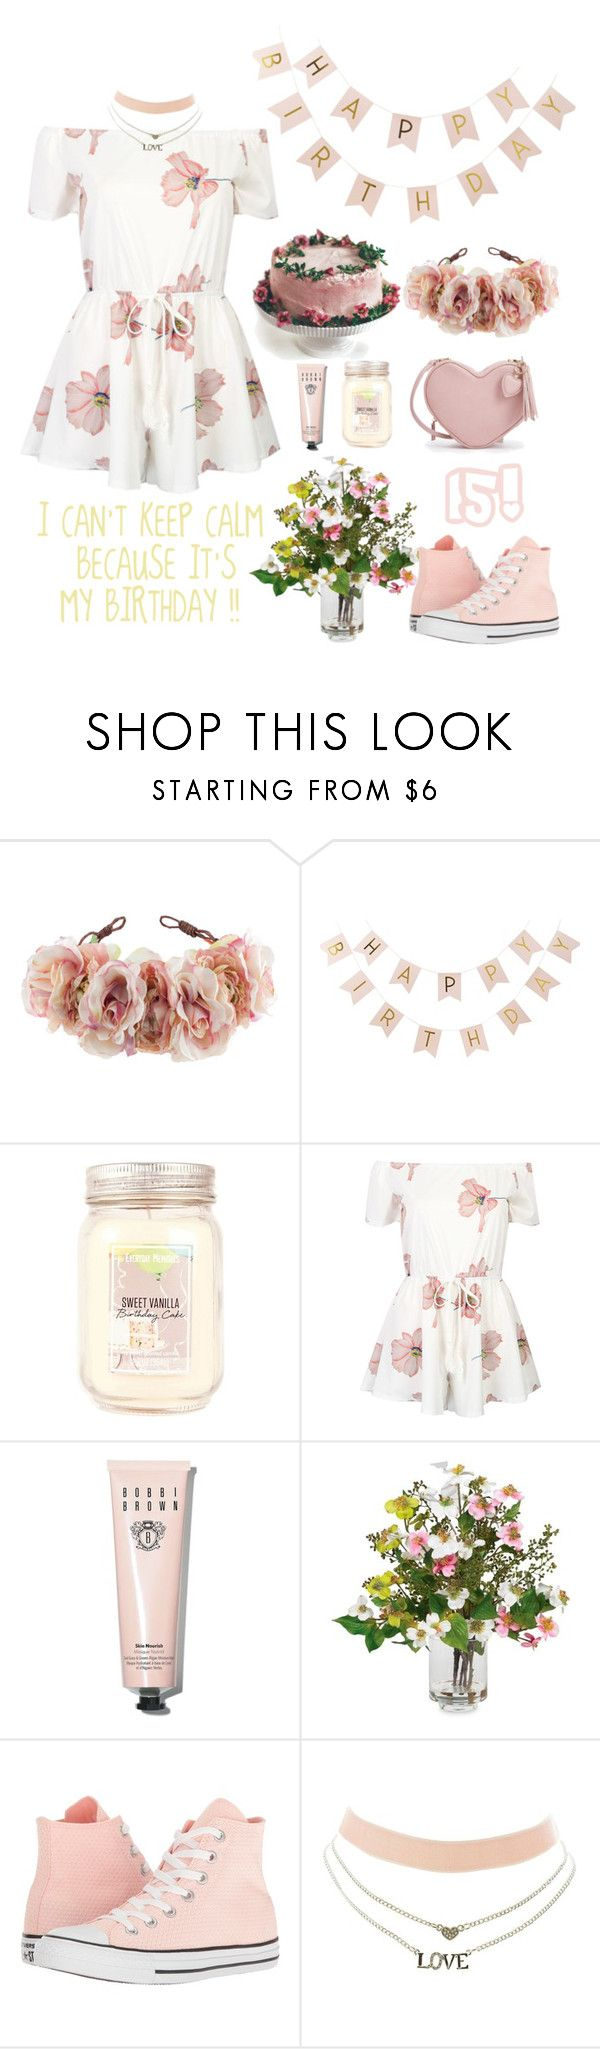 """""""IT'S MY BIRTHDAY !!!! 😊"""" by hermiona355 ❤ liked on Polyvore featuring Rock 'N Rose, Ginger Ray, WithChic, Bobbi Brown Cosmetics, Nearly Natural, Converse and Charlotte Russe"""